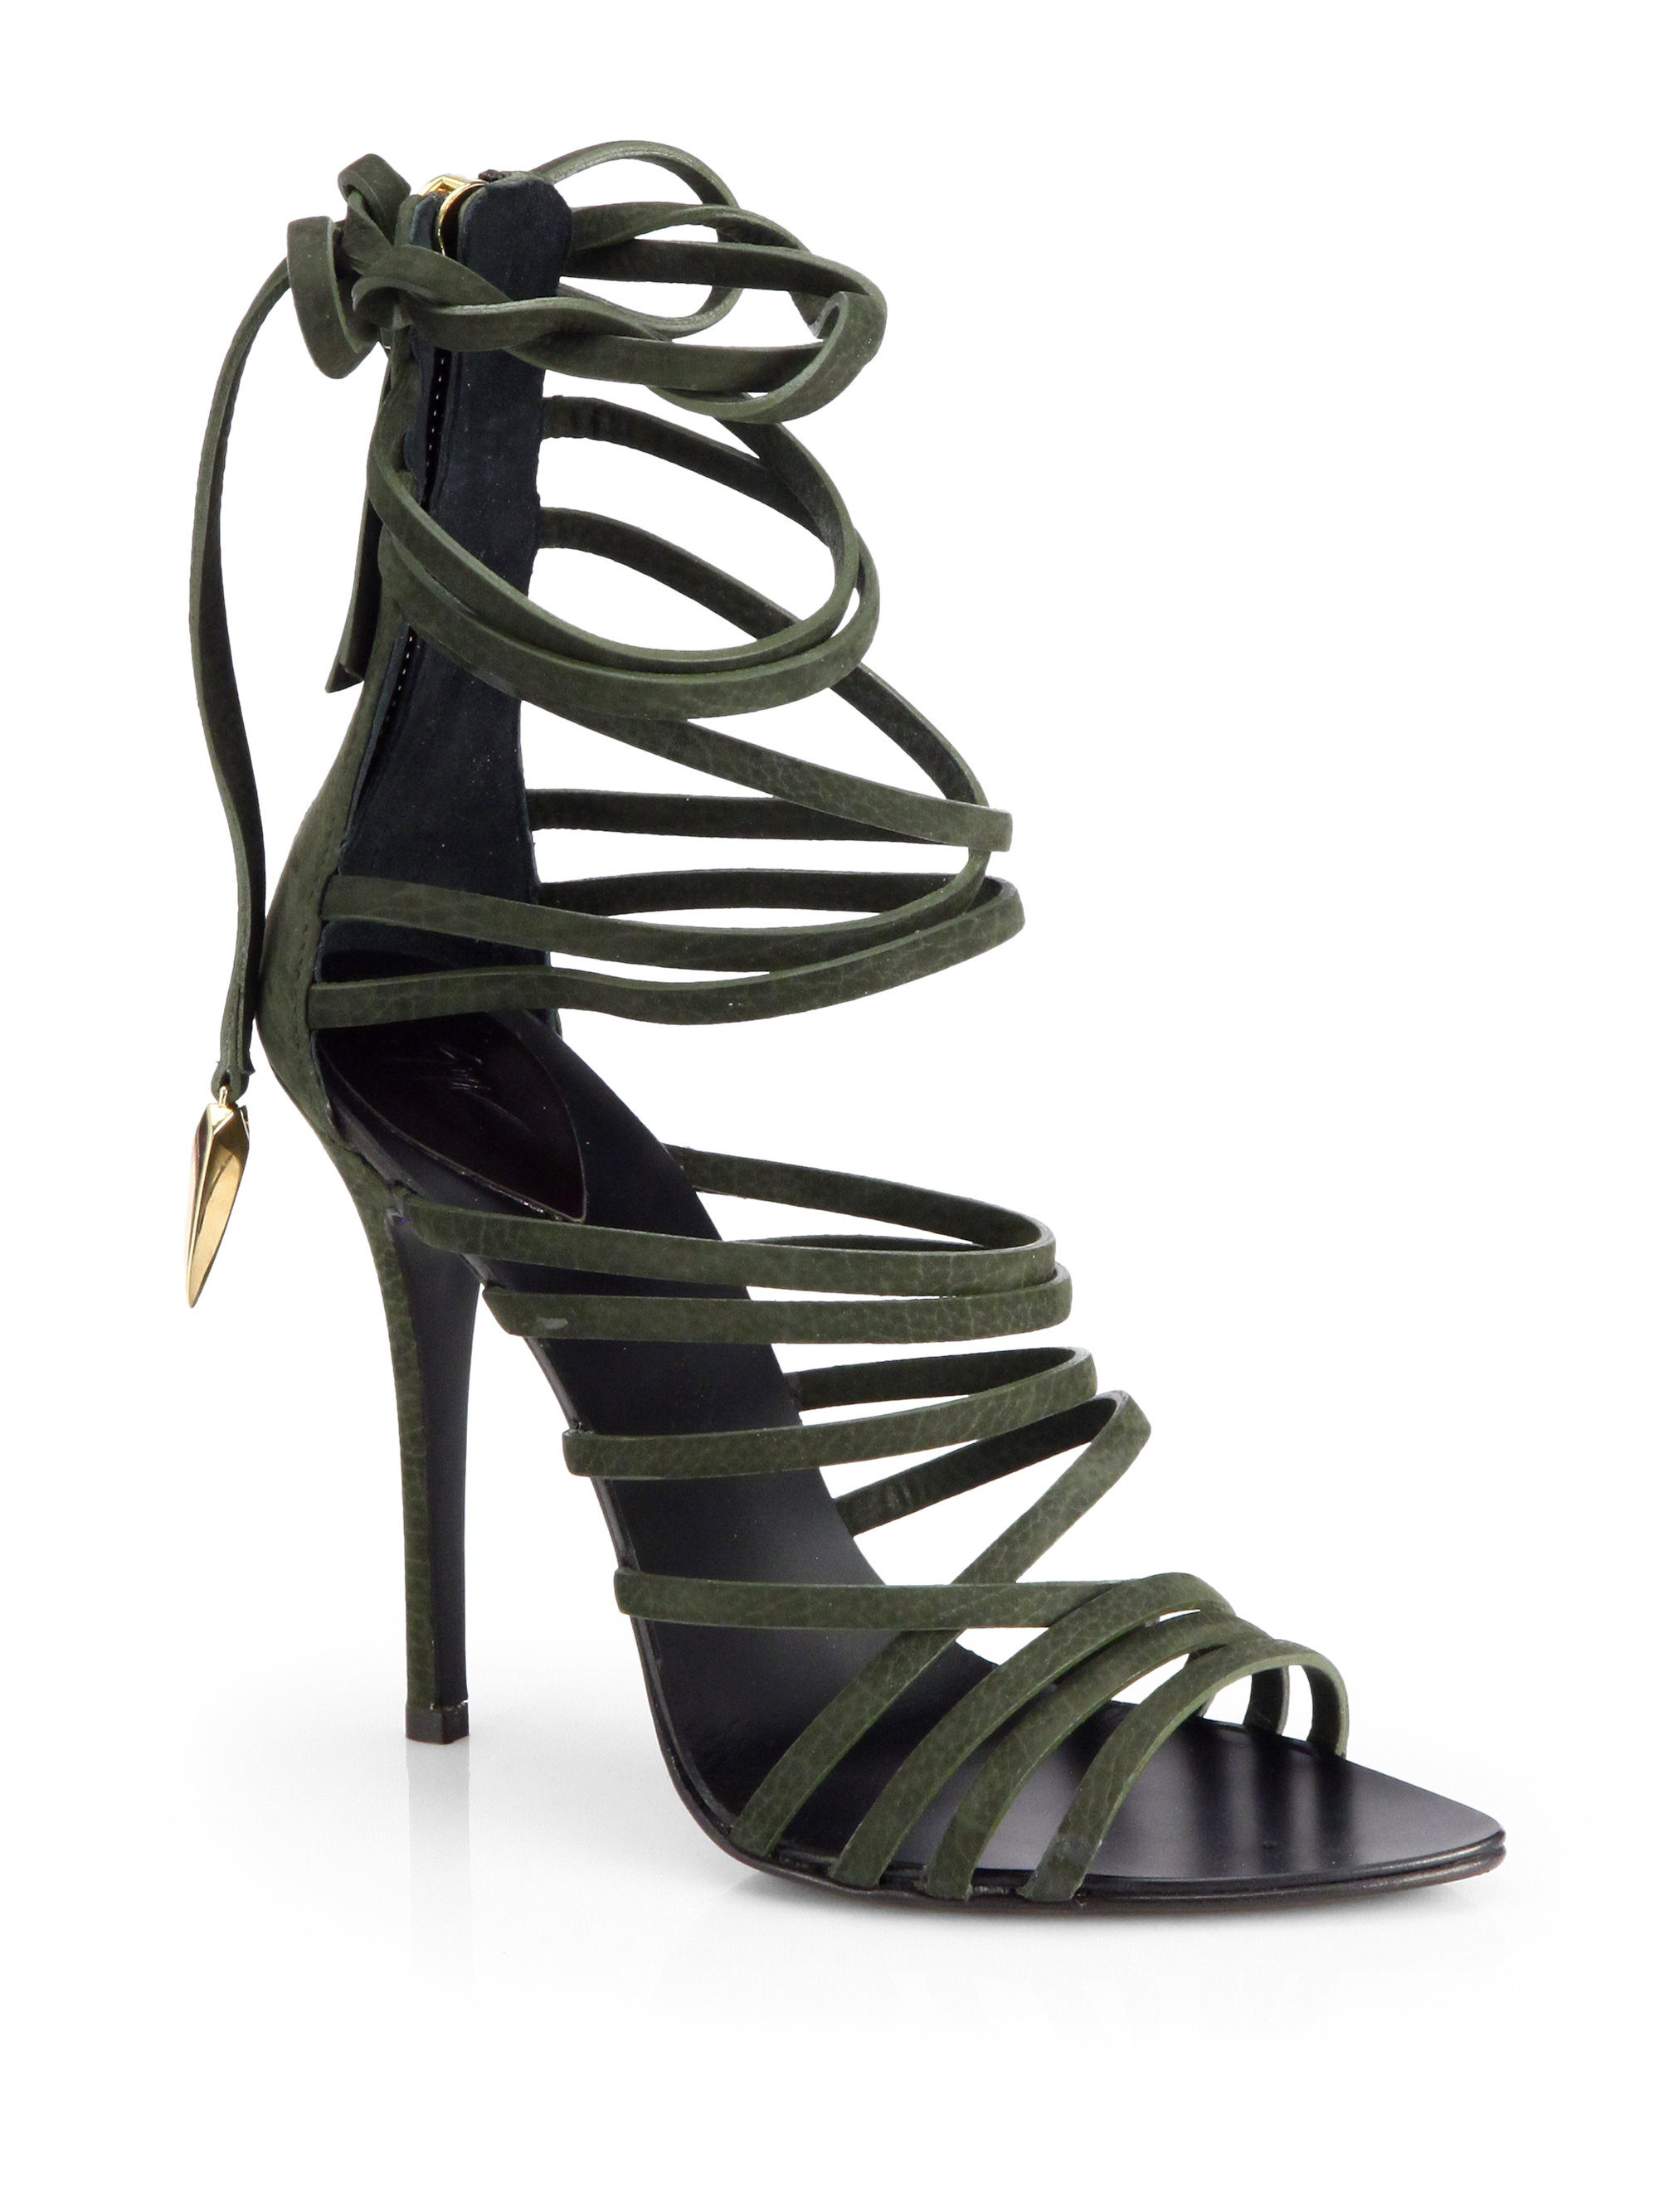 4e607d86750 Lyst - Giuseppe Zanotti Leather Strappy Tieup Sandals in Green